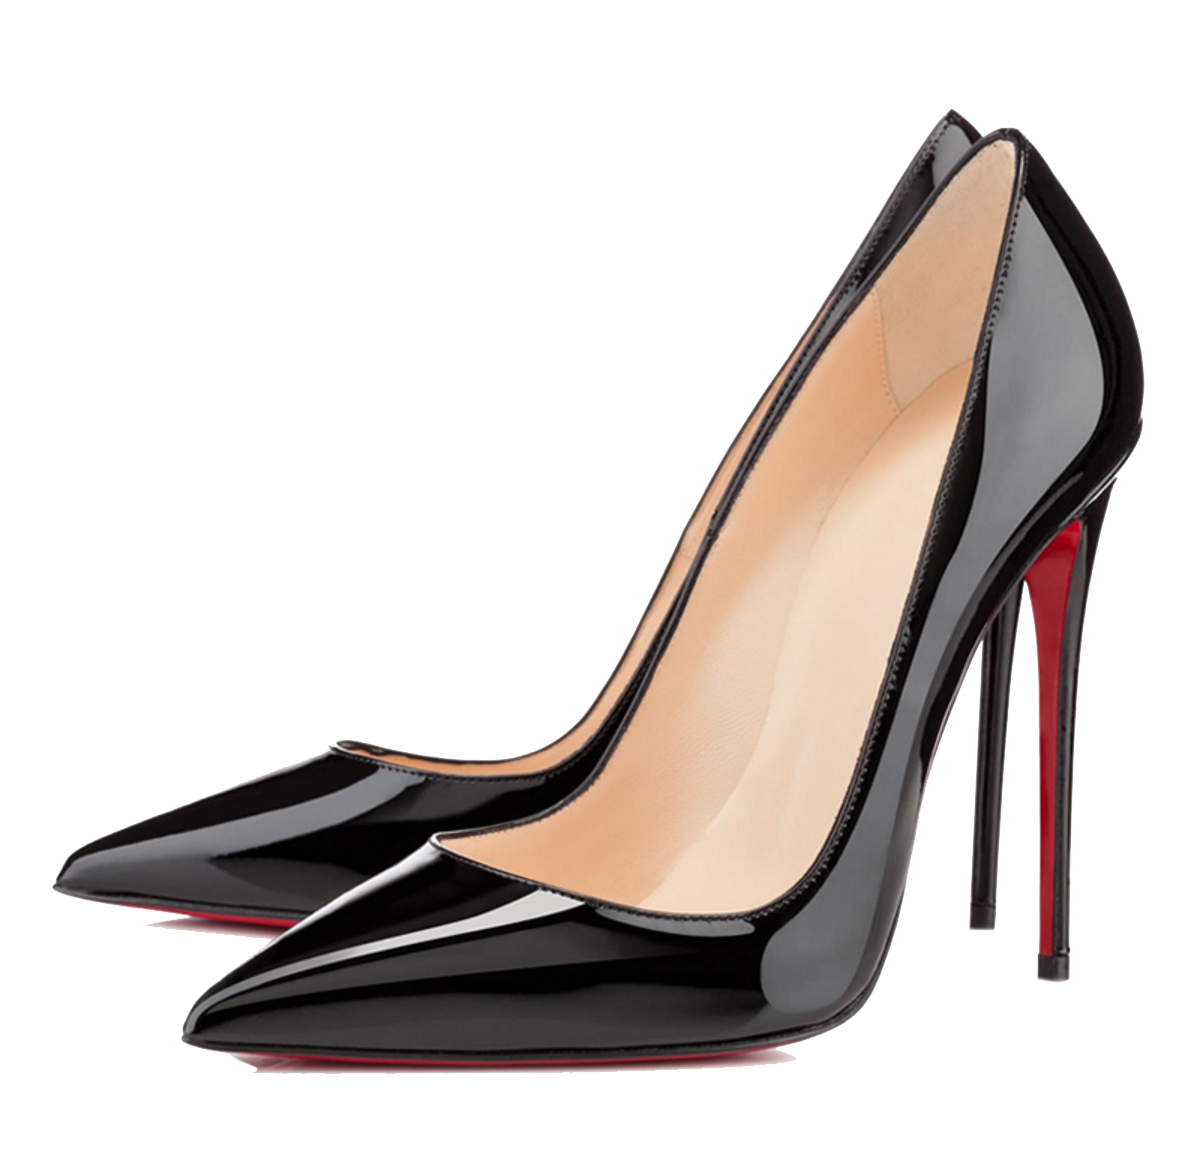 Women Shoes Png Downloads Image image #45080